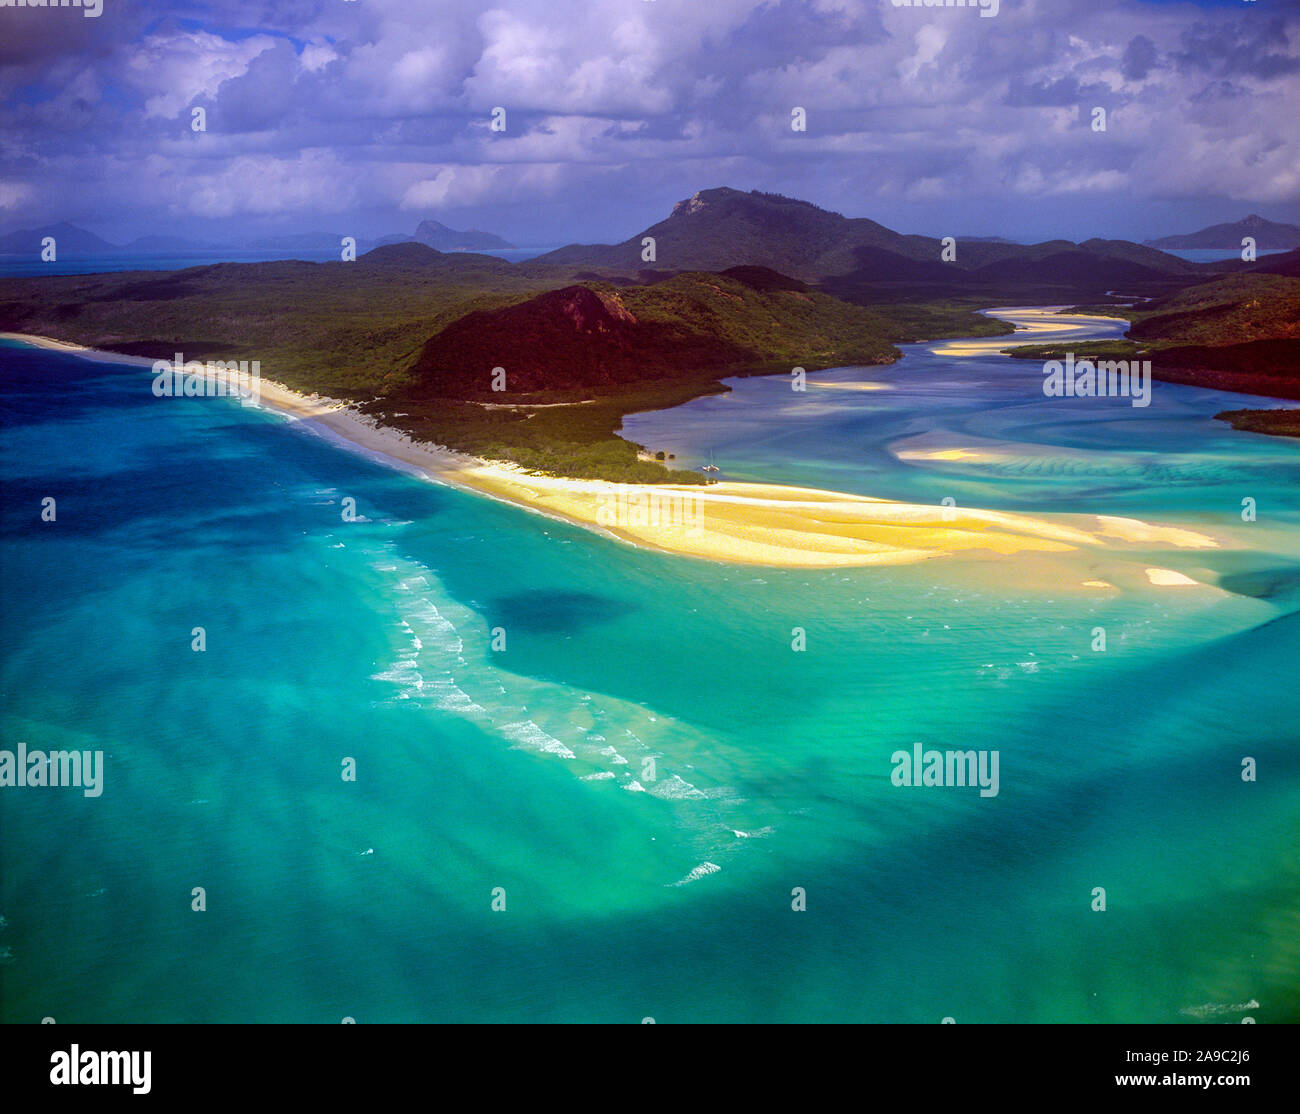 Cook Inlet tidal patterns, great Barrier Reef Marine Park, Queensland, Australia, whitsunday Islands, world's largest coral reefs Stock Photo